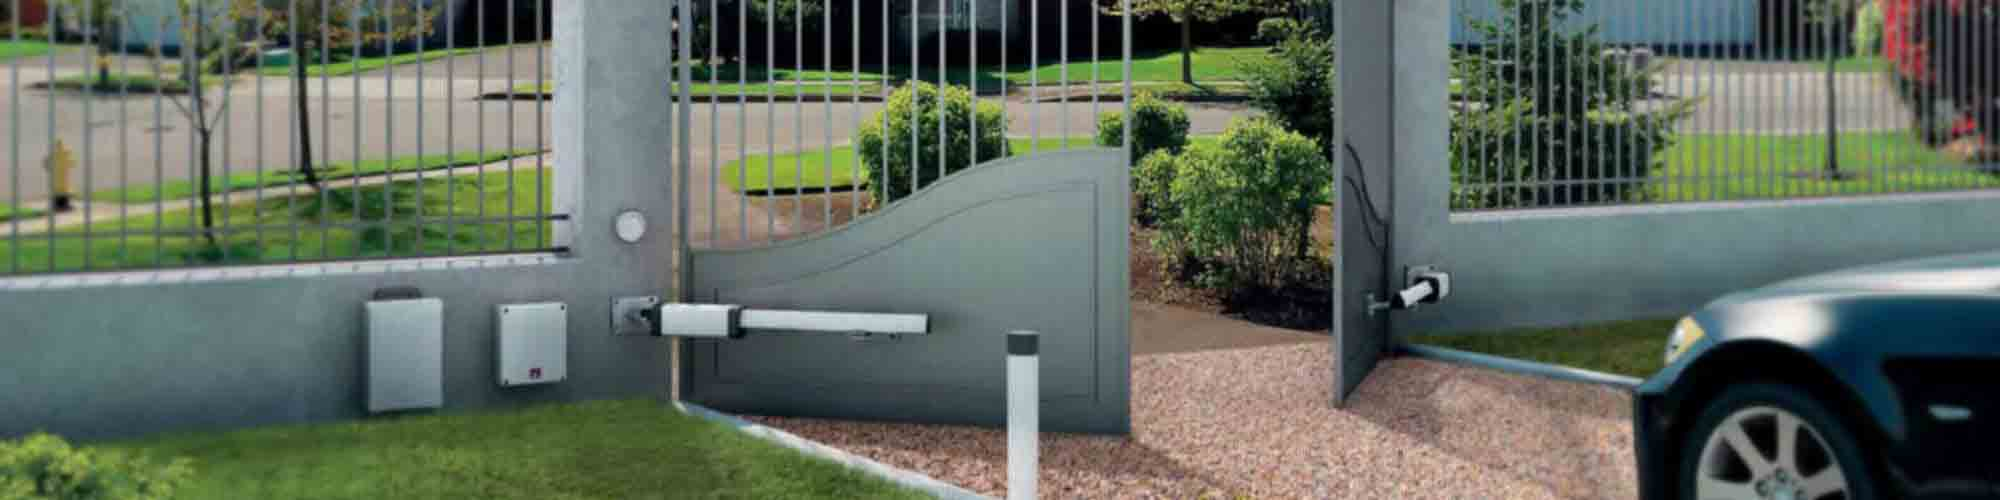 Electric Gate Repairs & Installation Services in Pasadena